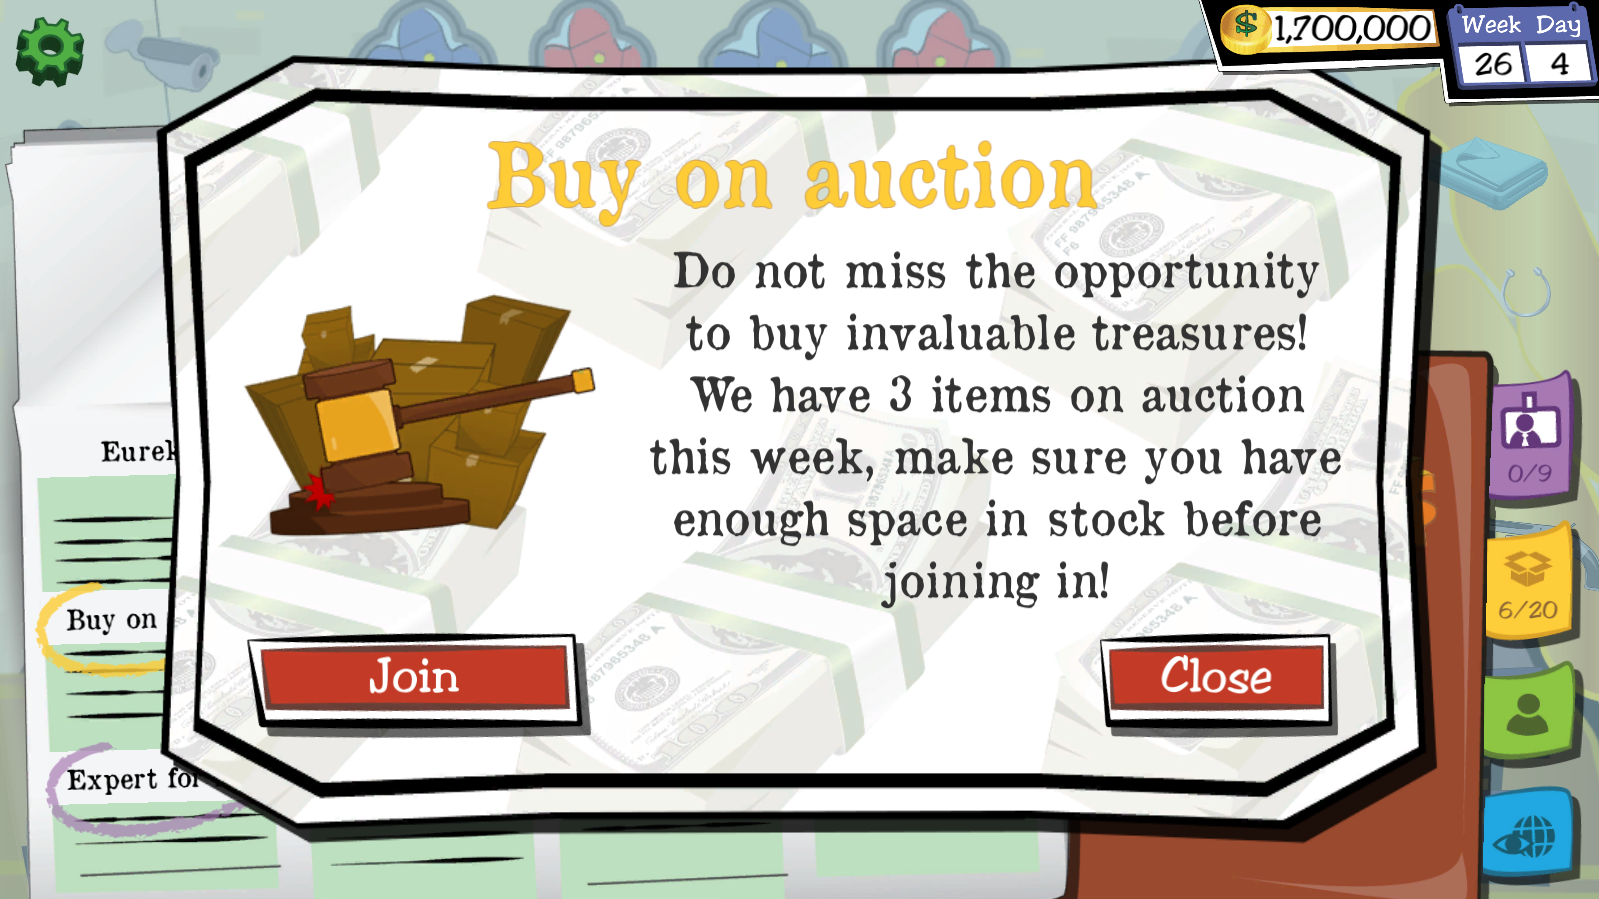 AuctionBuyIcon